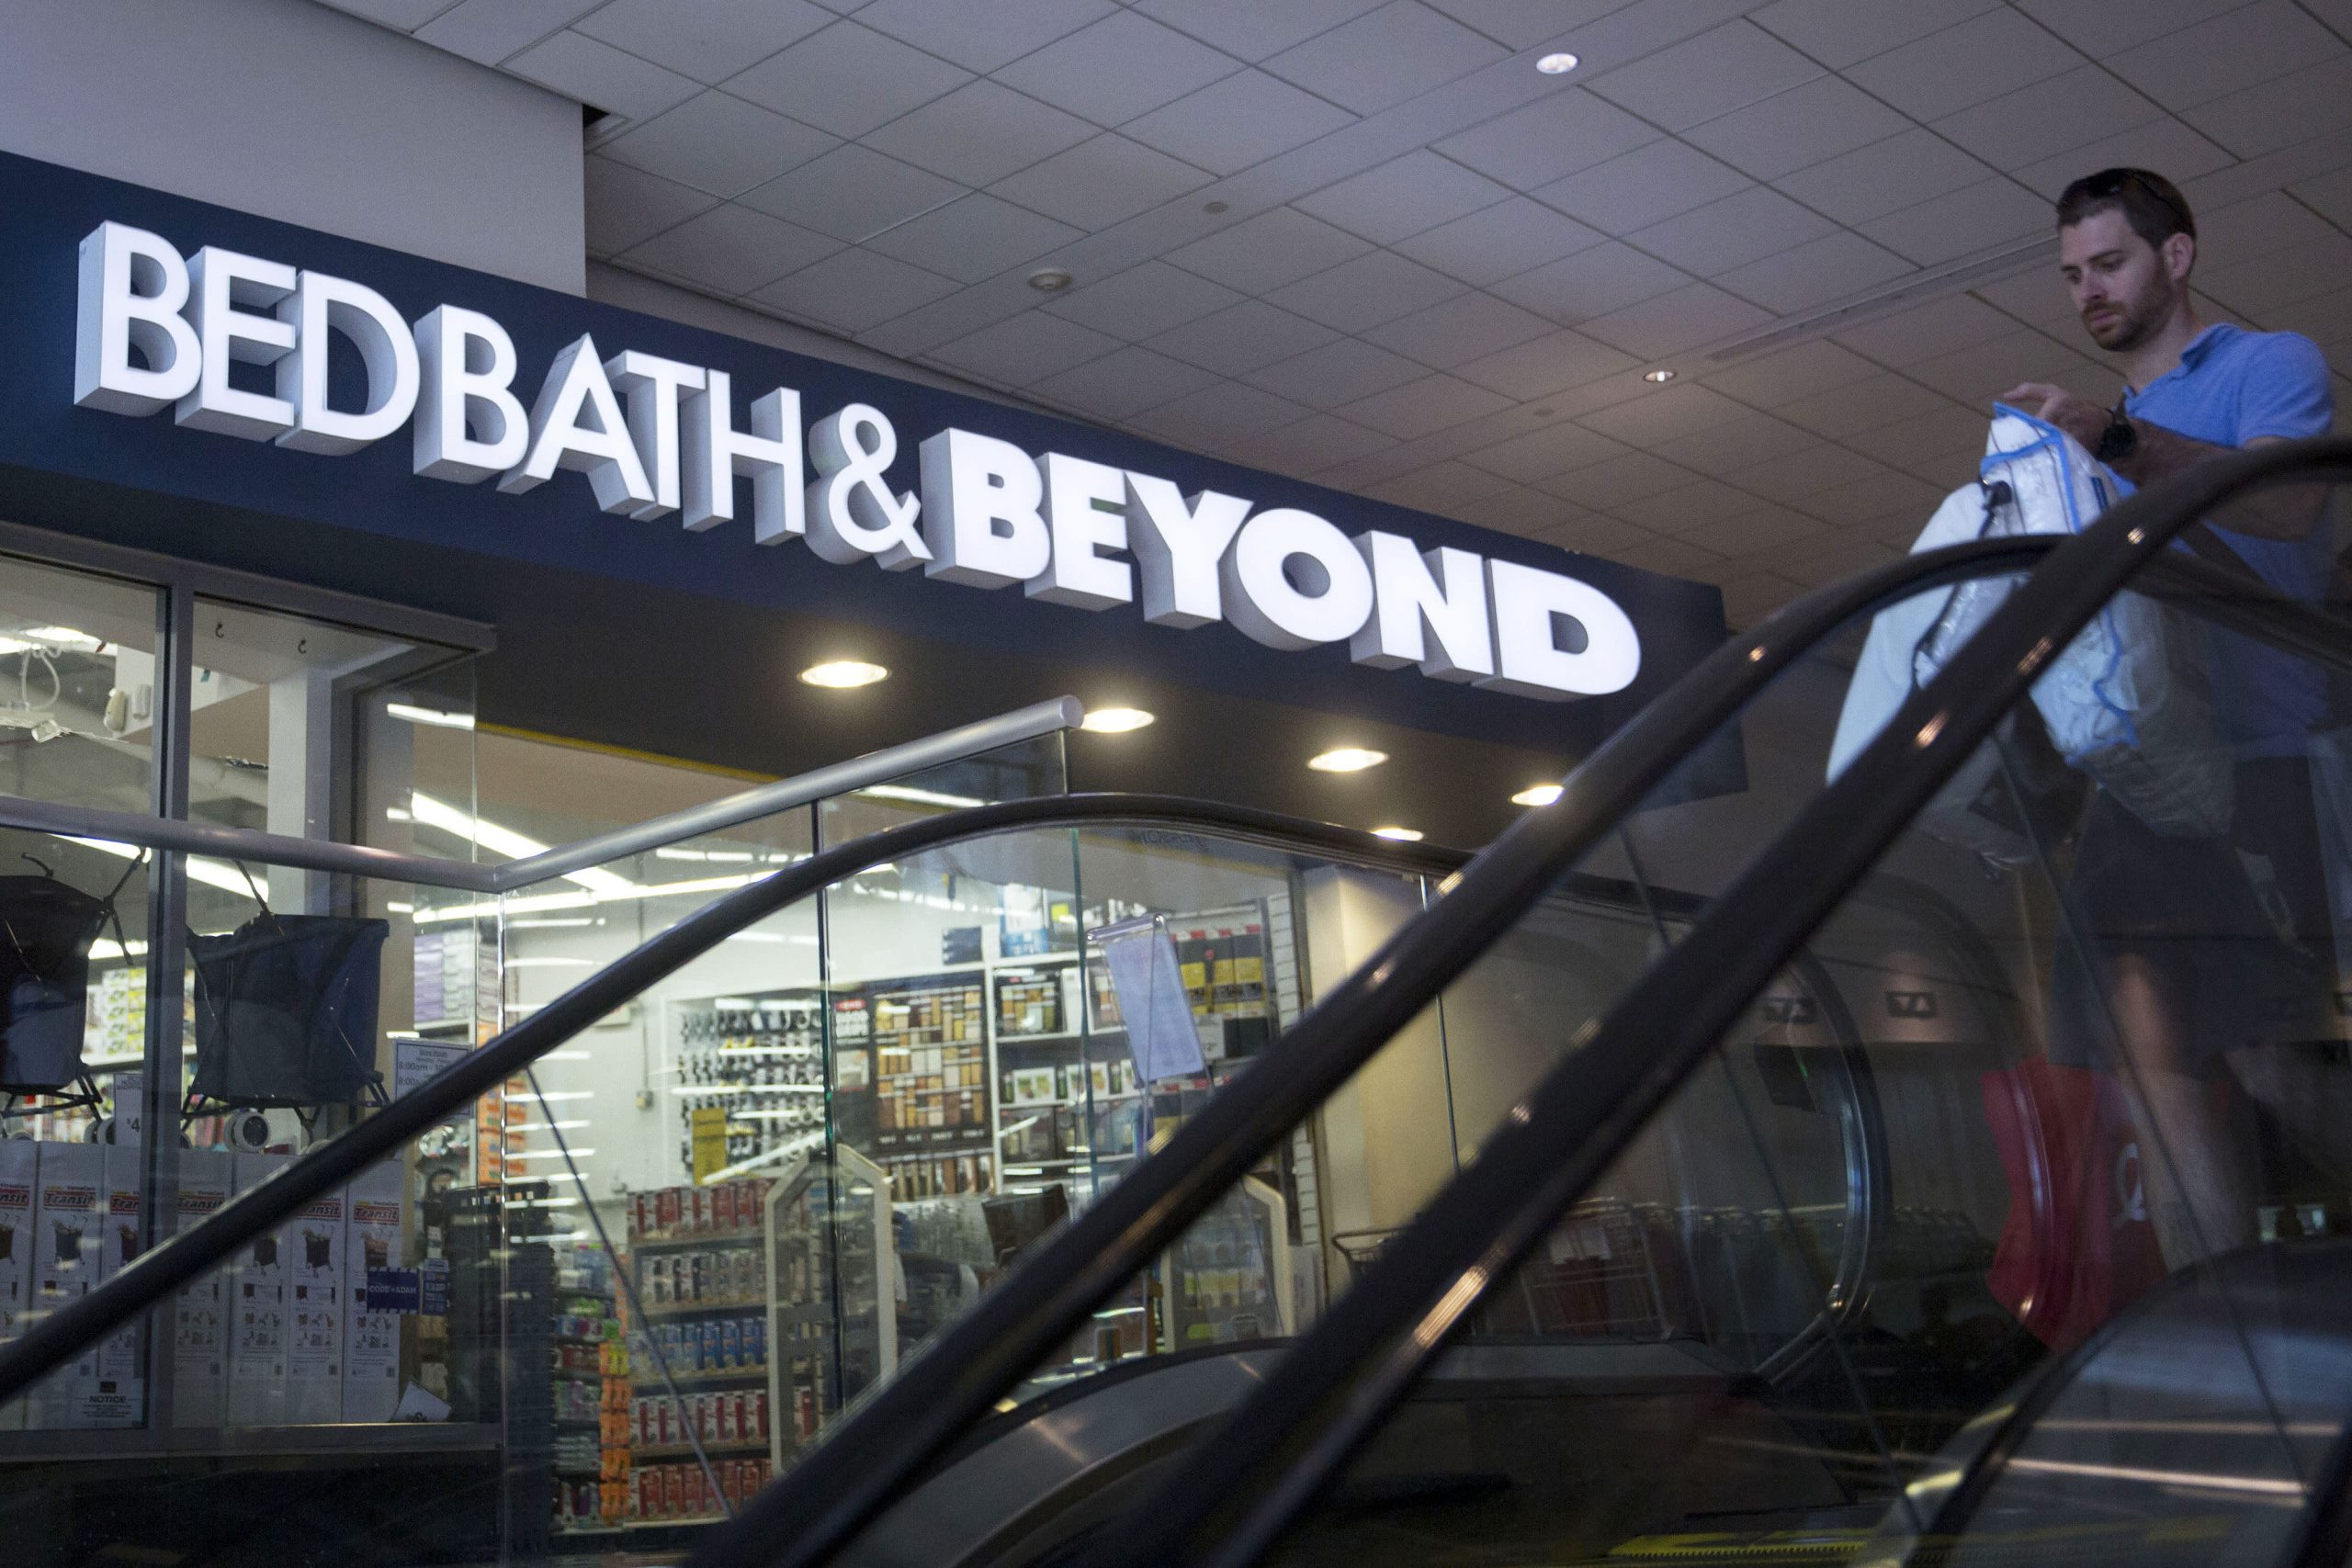 Bed Bath & Beyond, Kohl's and more